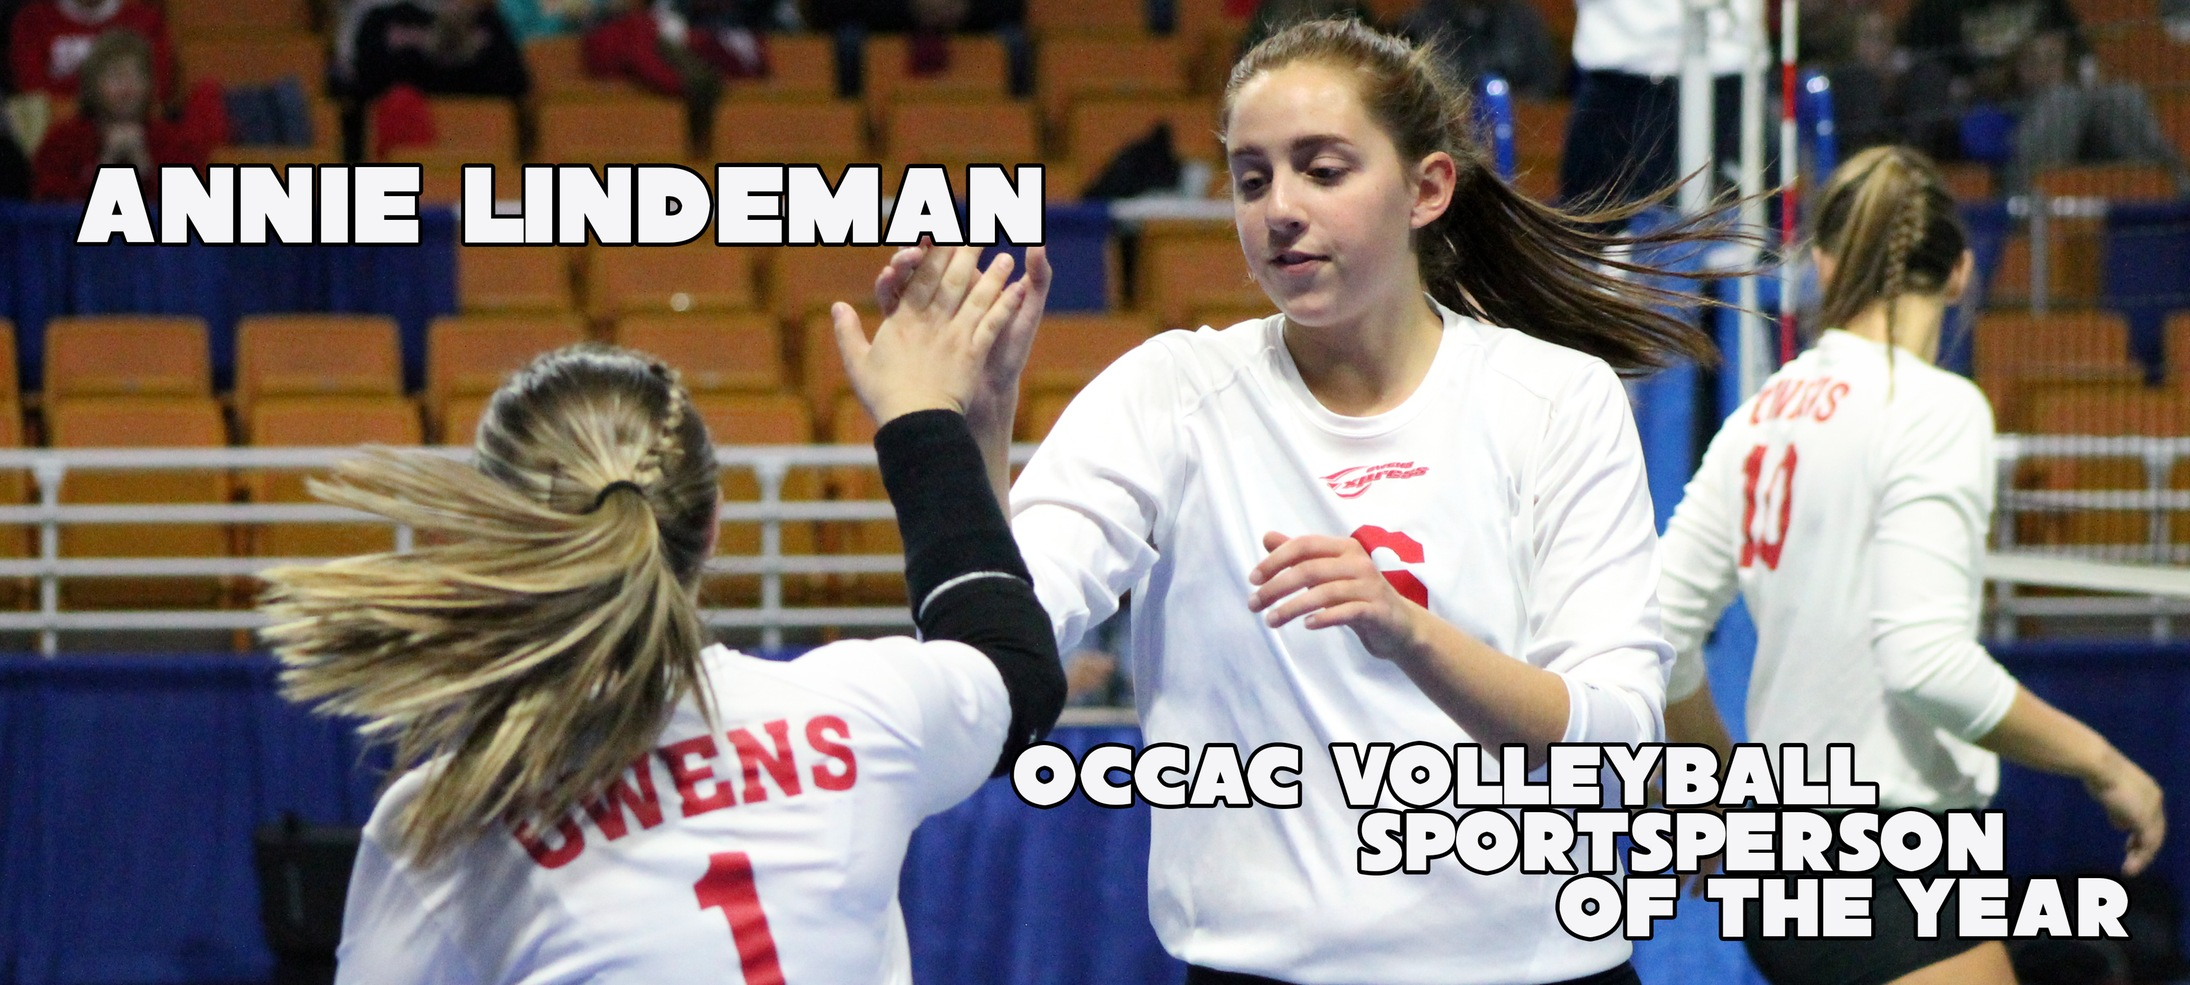 Lindeman, Frost, Bennett Awarded For Sportsmanship By OCCAC